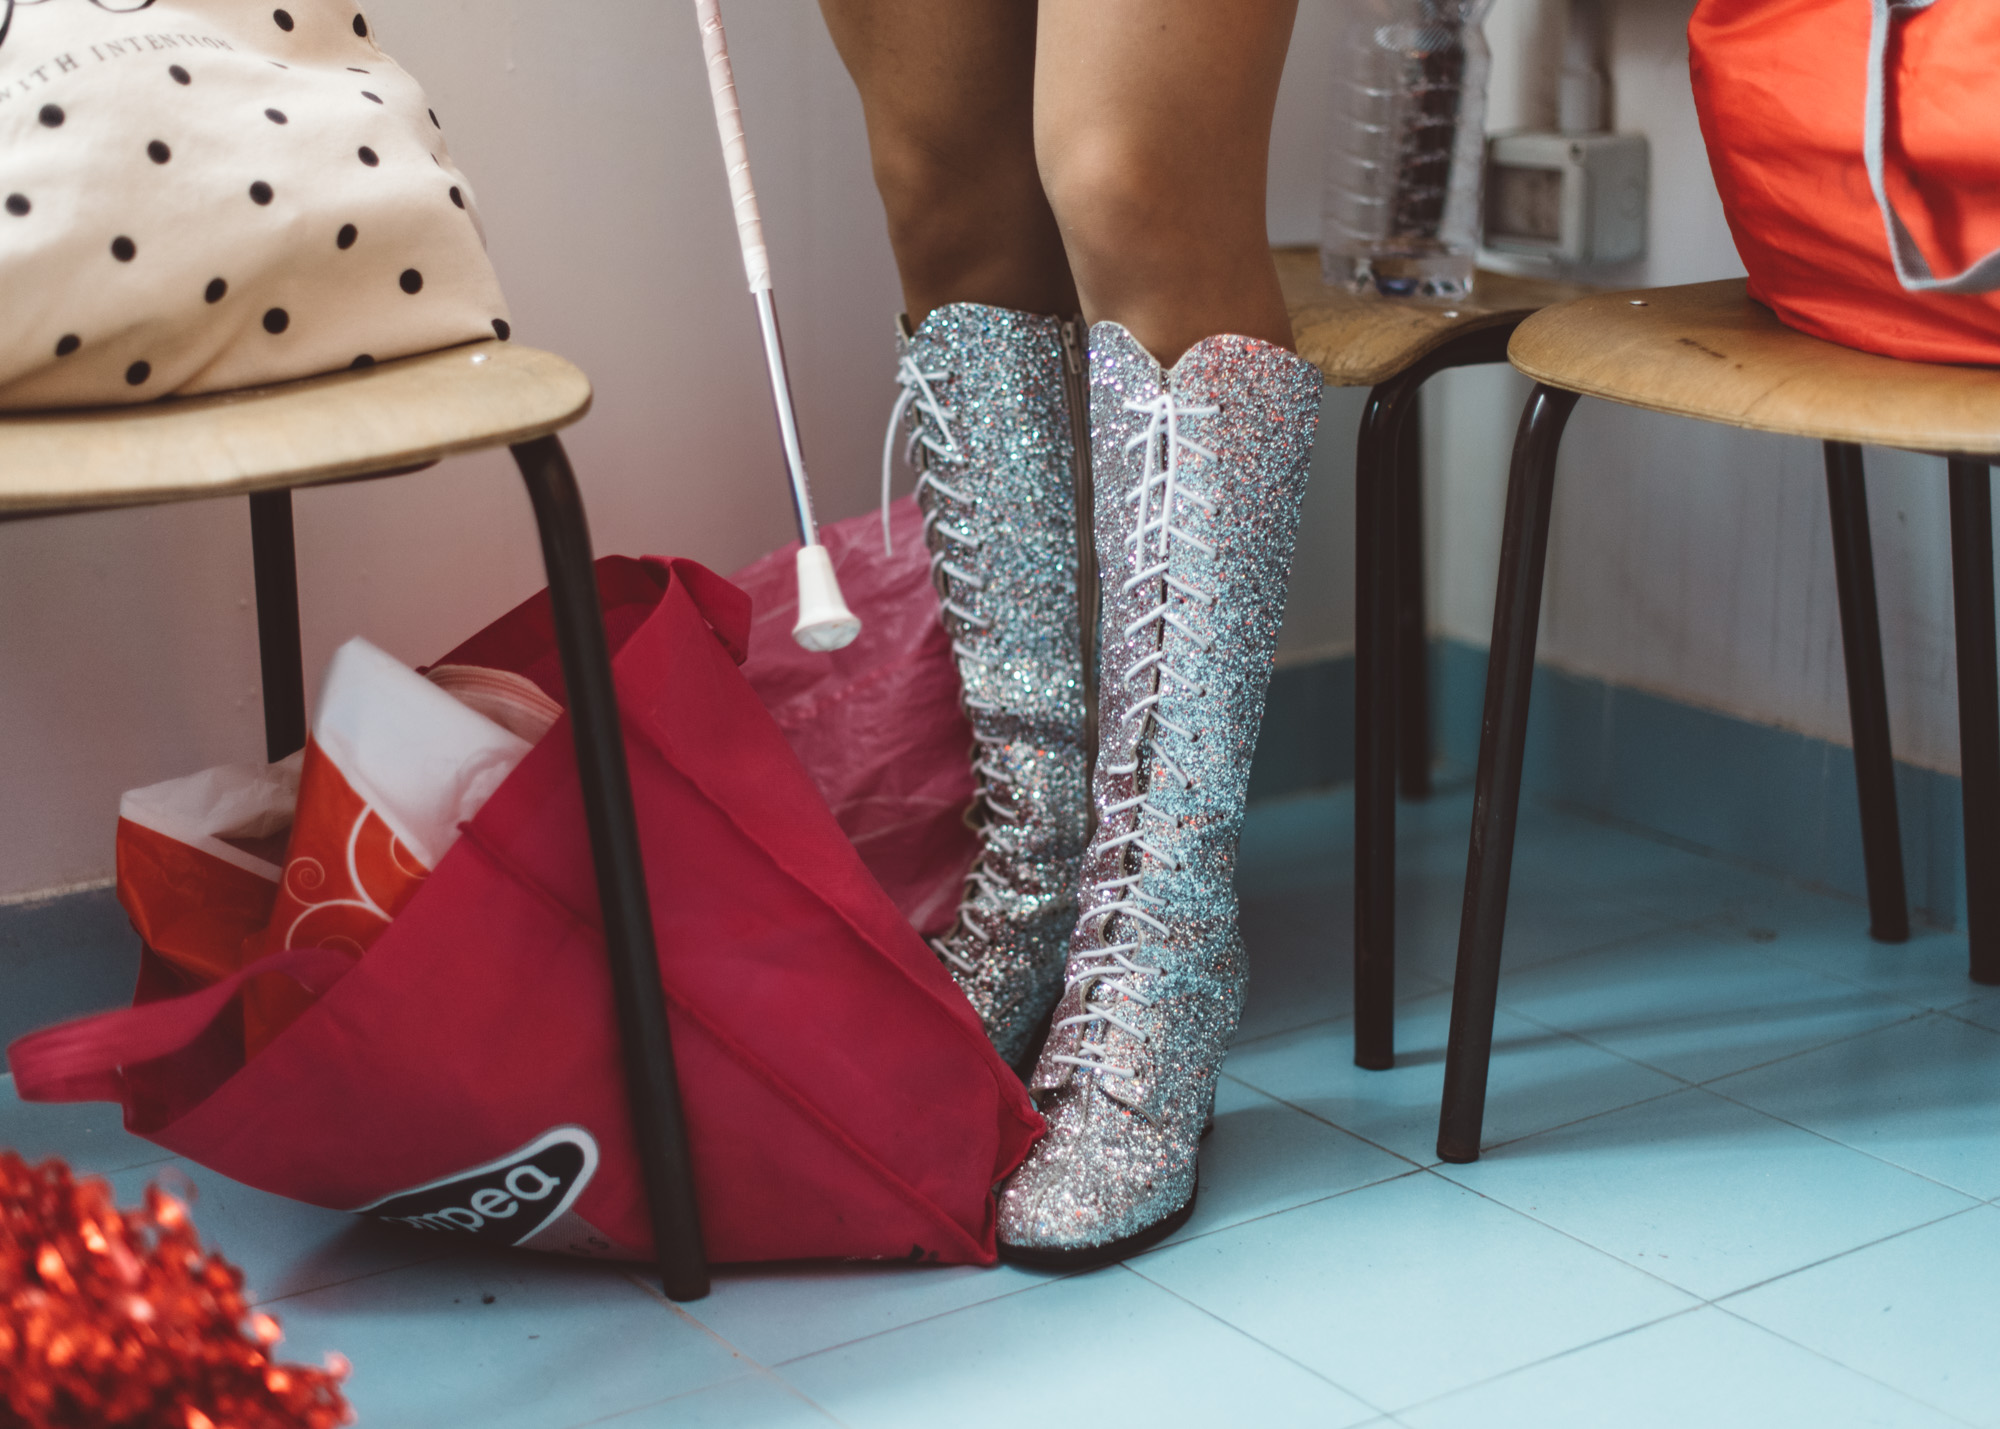 Martina Franca, 2018. A majorette wearing sparkling boots gets changed in the locker rooms of a school gymnasium.